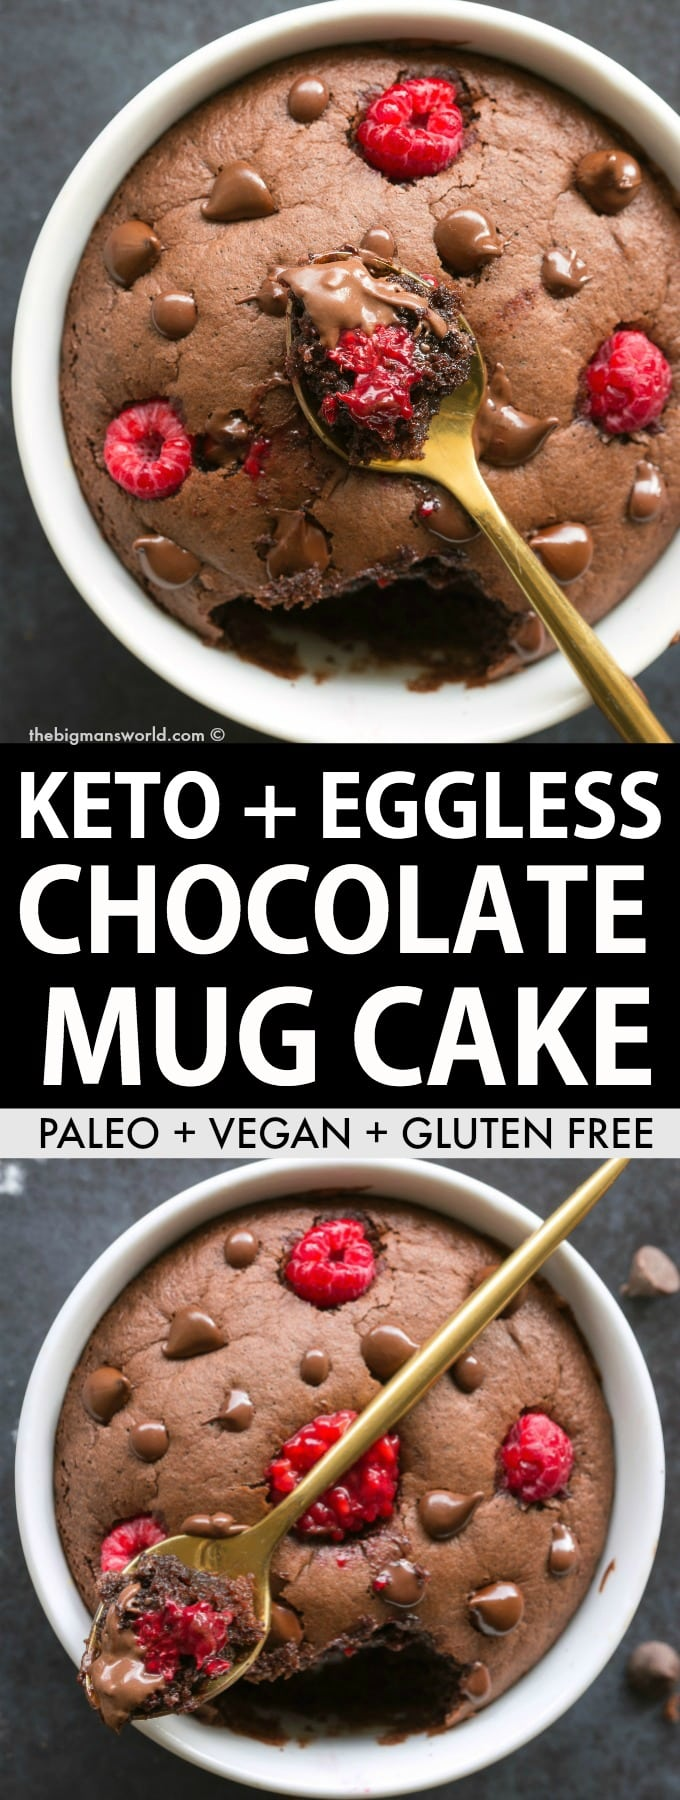 Keto Almond Flour Chocolate Mug Cake Paleo Vegan The Big Man S World